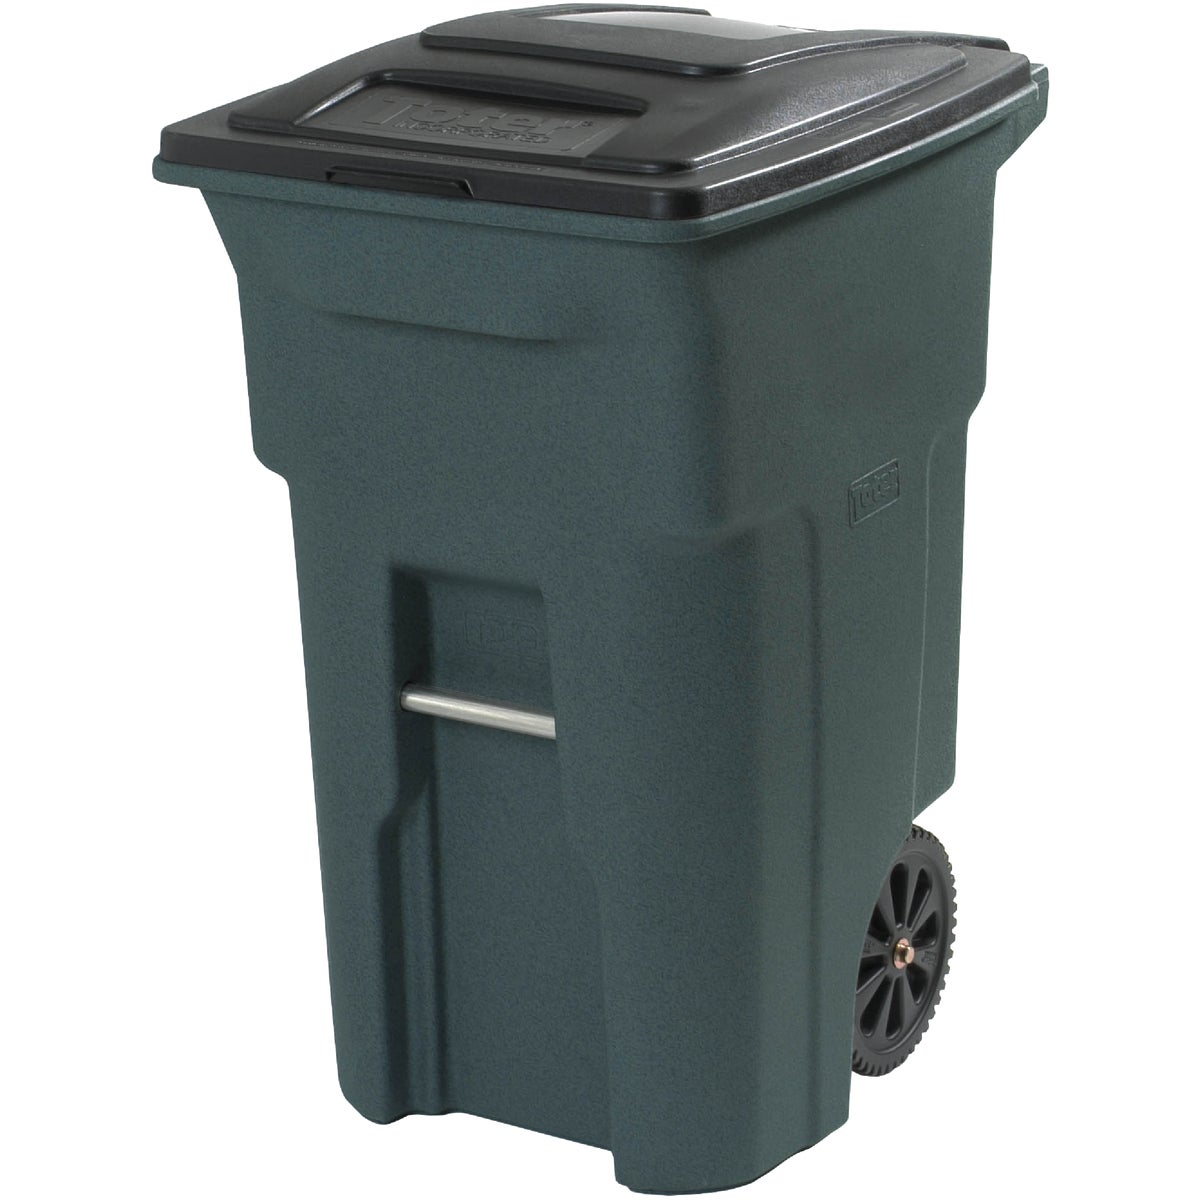 96GAL 2WHL REFUSE CART - 025596-D4GRS by Toter